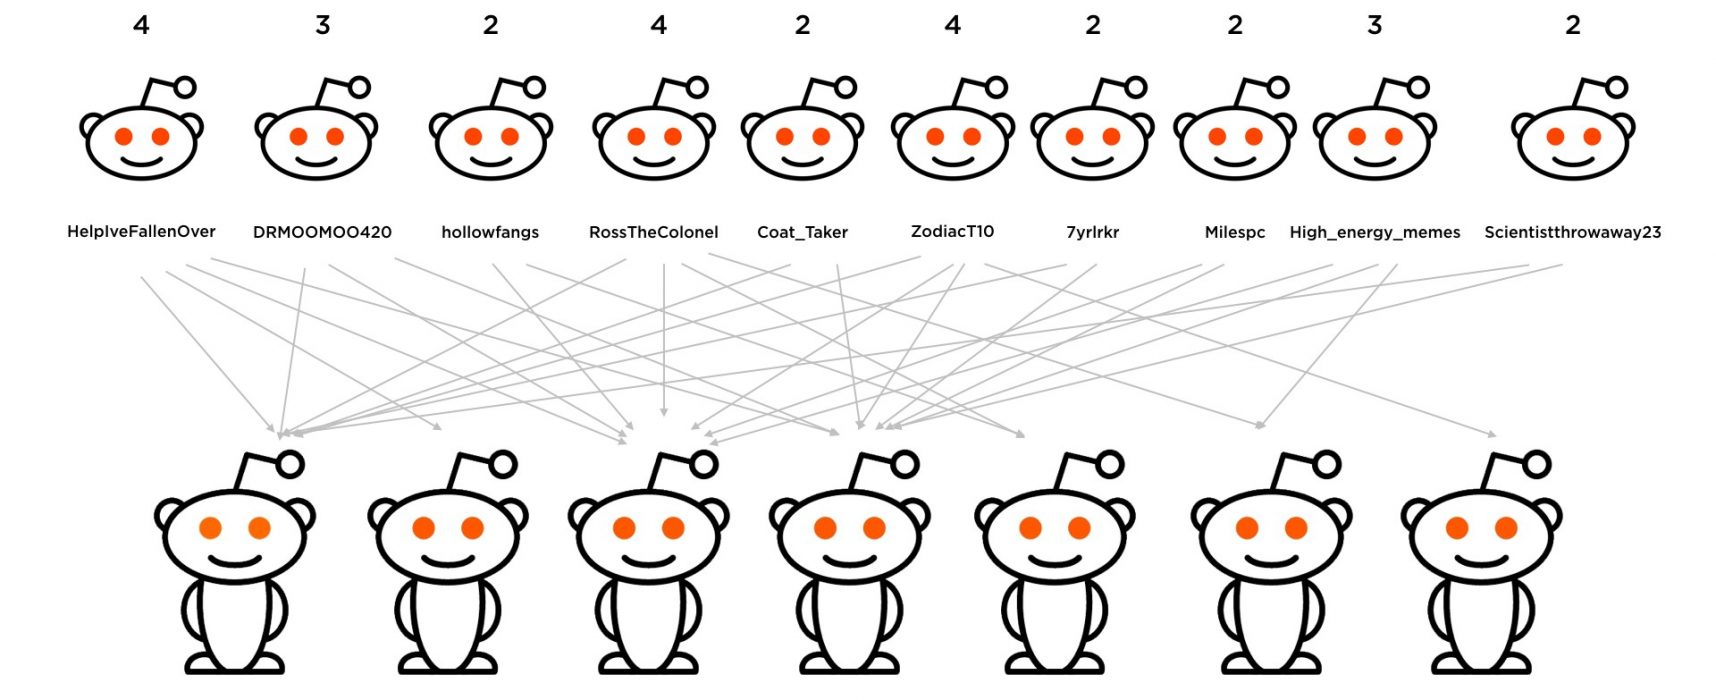 Spread it on Reddit: How a fake story about Angela Merkel led to a far-right cluster on Reddit